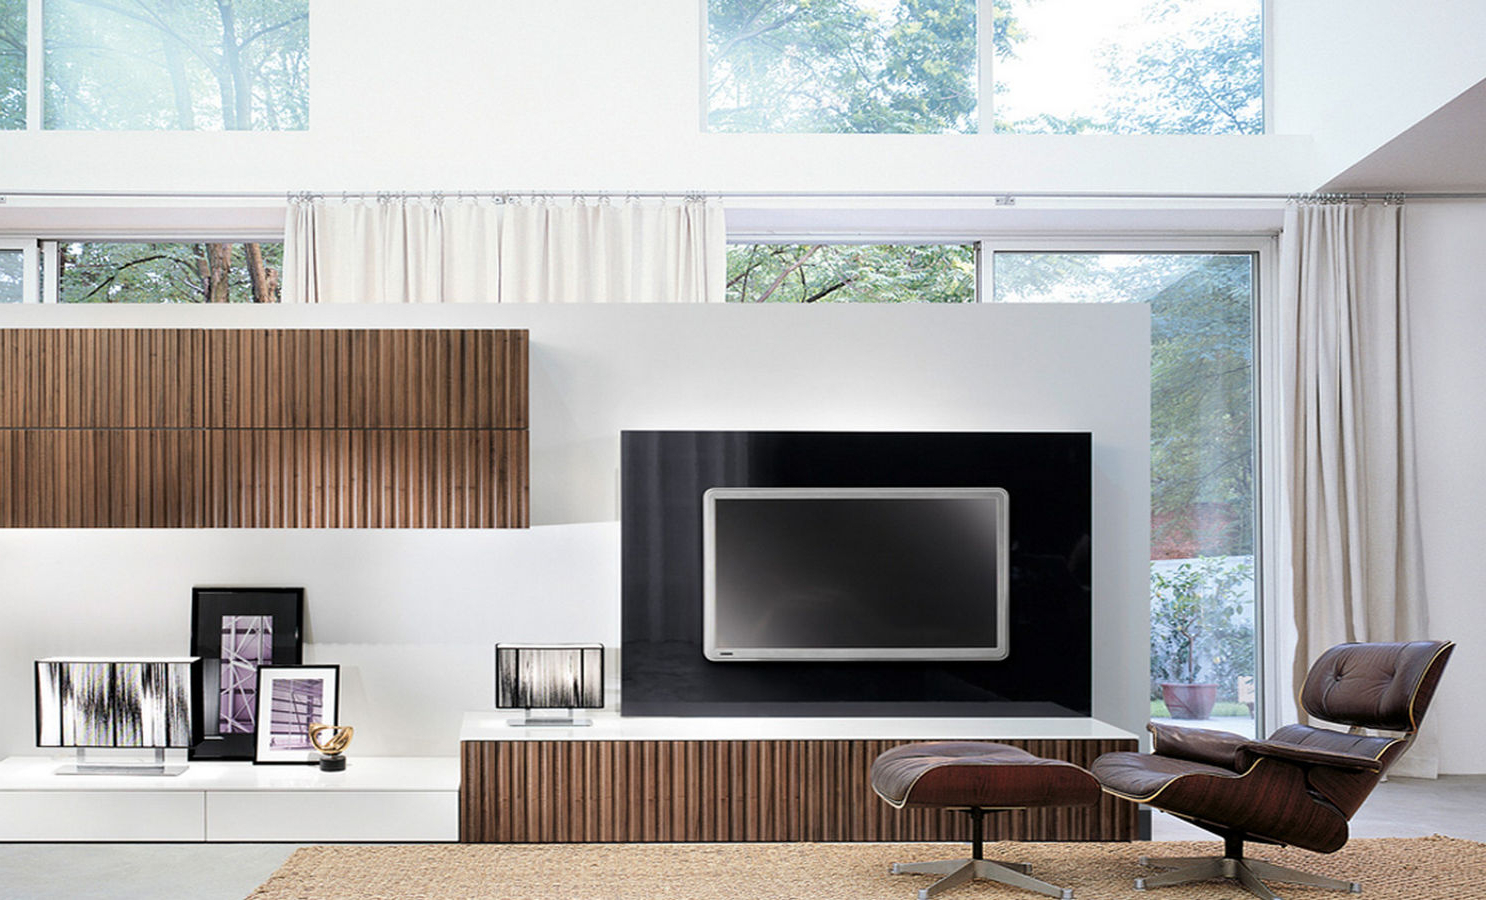 Open Air Spacious Room With White Divider Combine Blonde Wooden Wall Within 2018 Modern Design Tv Cabinets (Gallery 7 of 20)